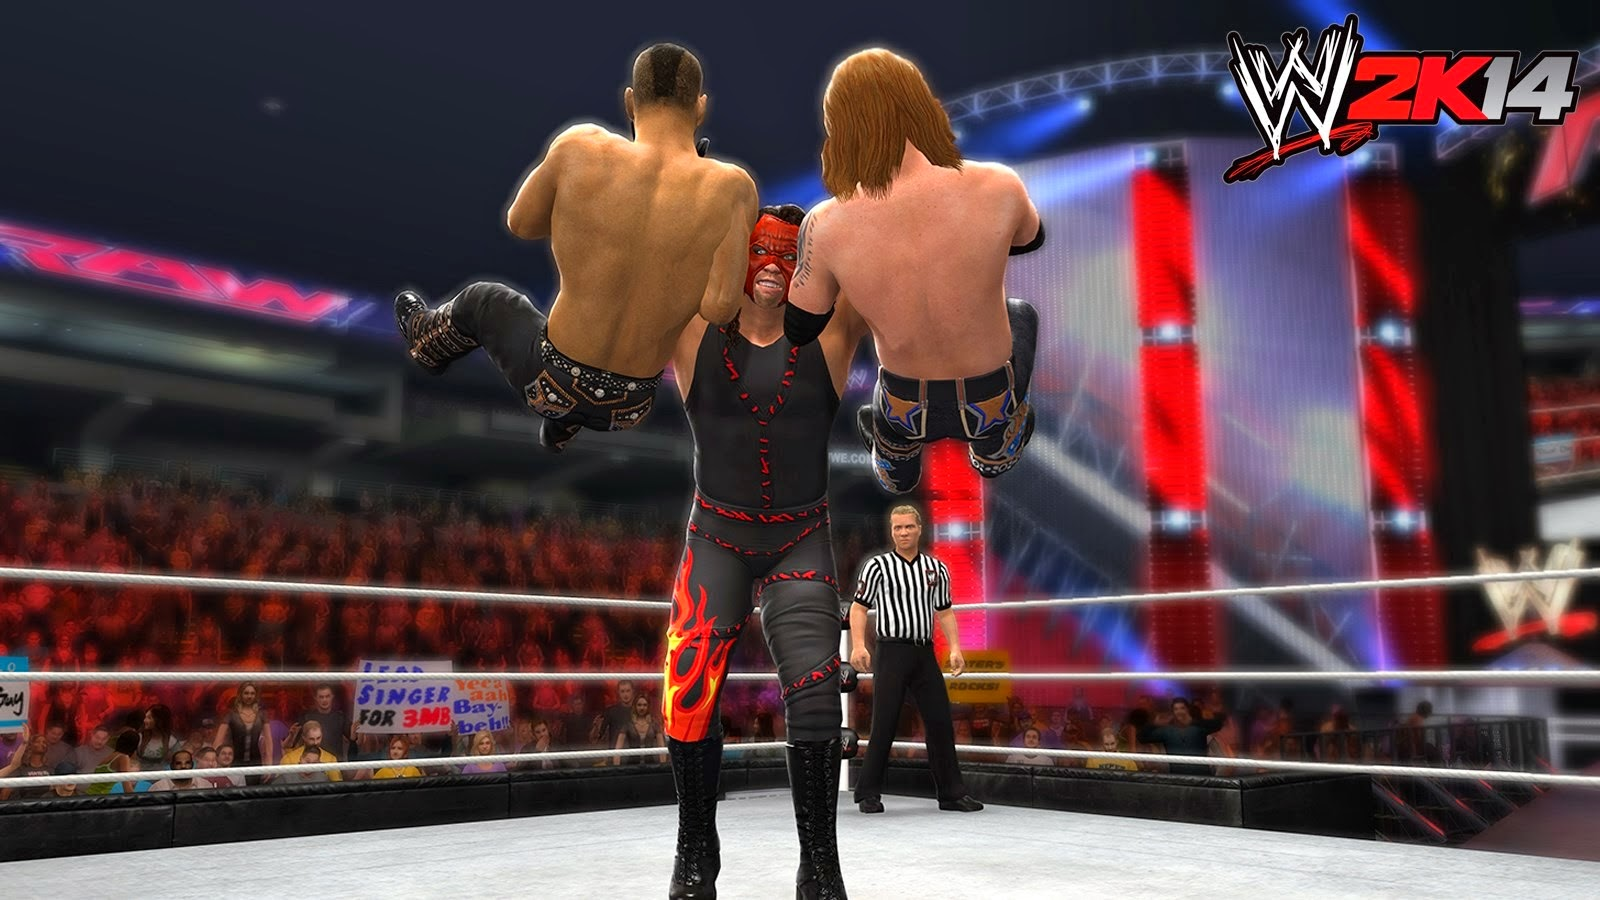 Wwe 2k14 Game For Android Free Download Apk